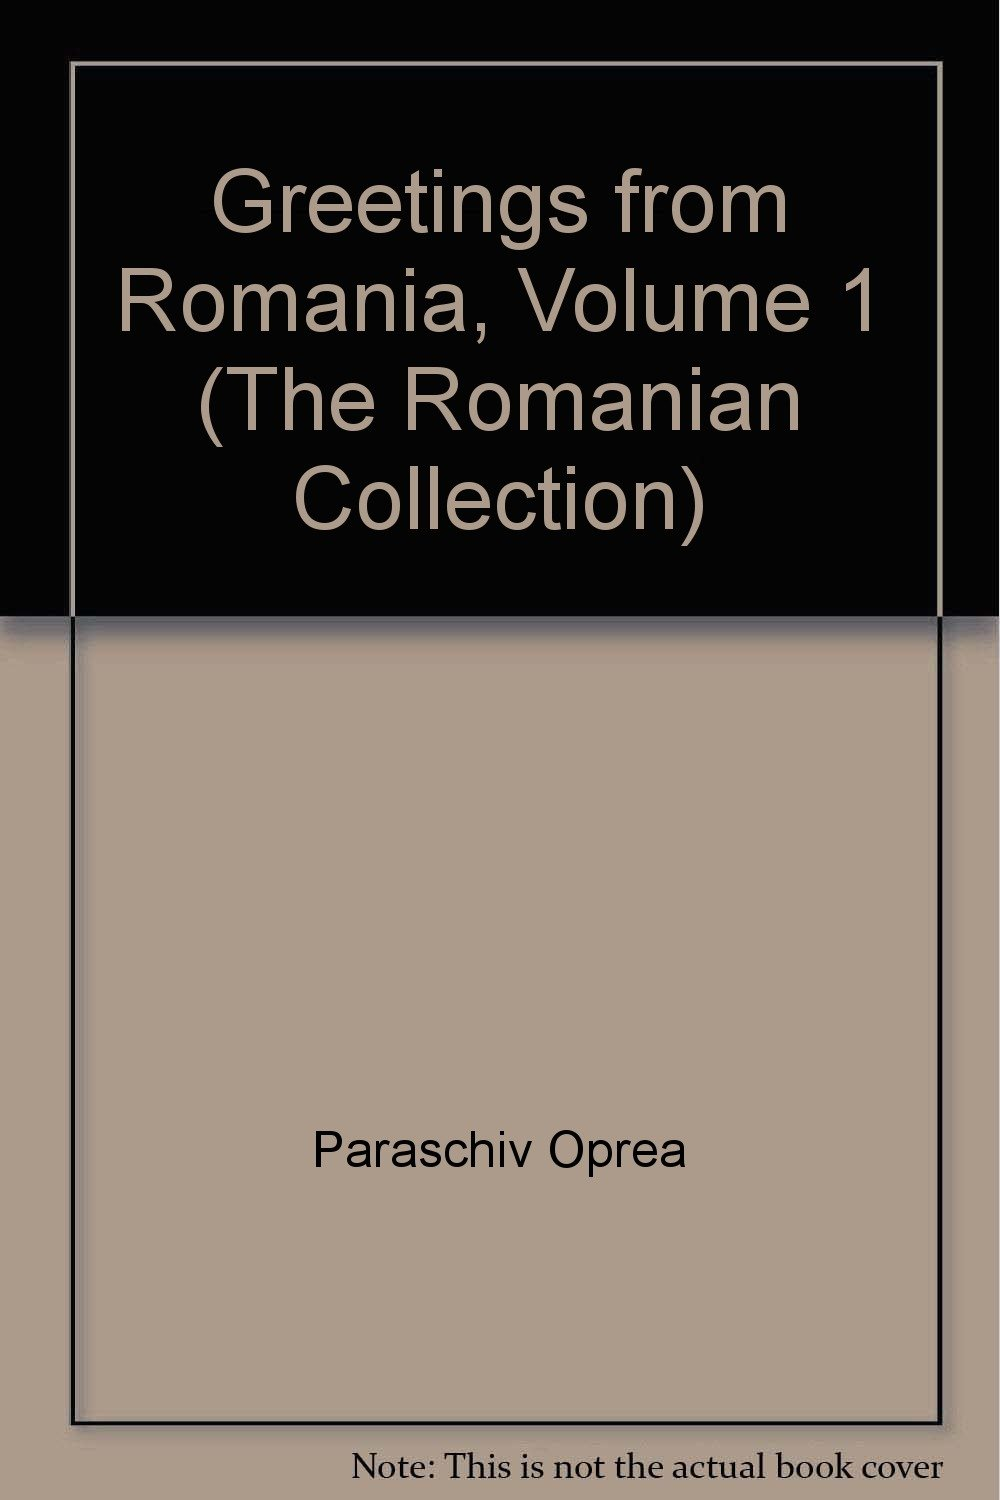 Greetings from romania volume 1 the romanian collection greetings from romania volume 1 the romanian collection paraschiv oprea 9789999487580 amazon books m4hsunfo